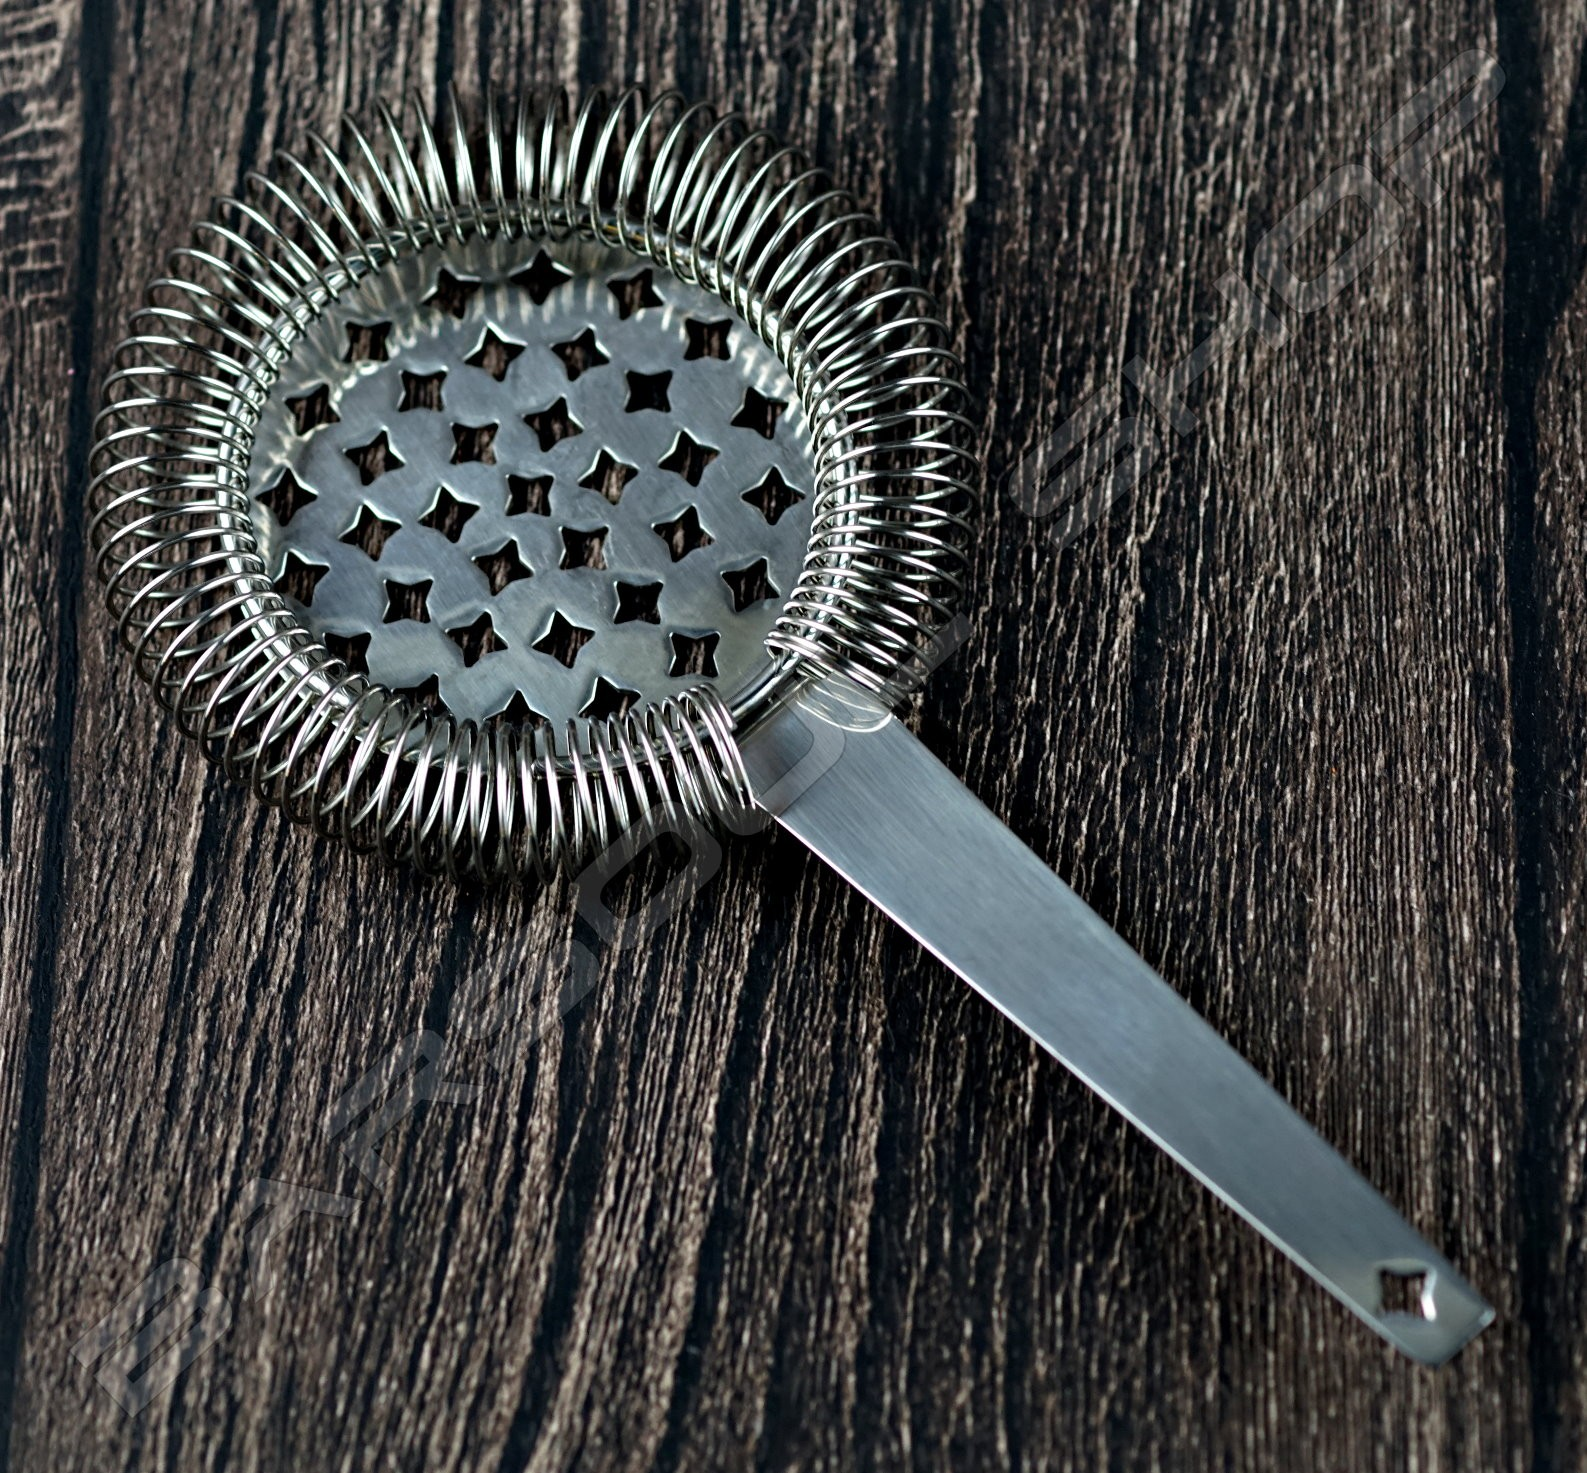 法式飛鏢濾冰器(銀色) French darts strainer(silver)